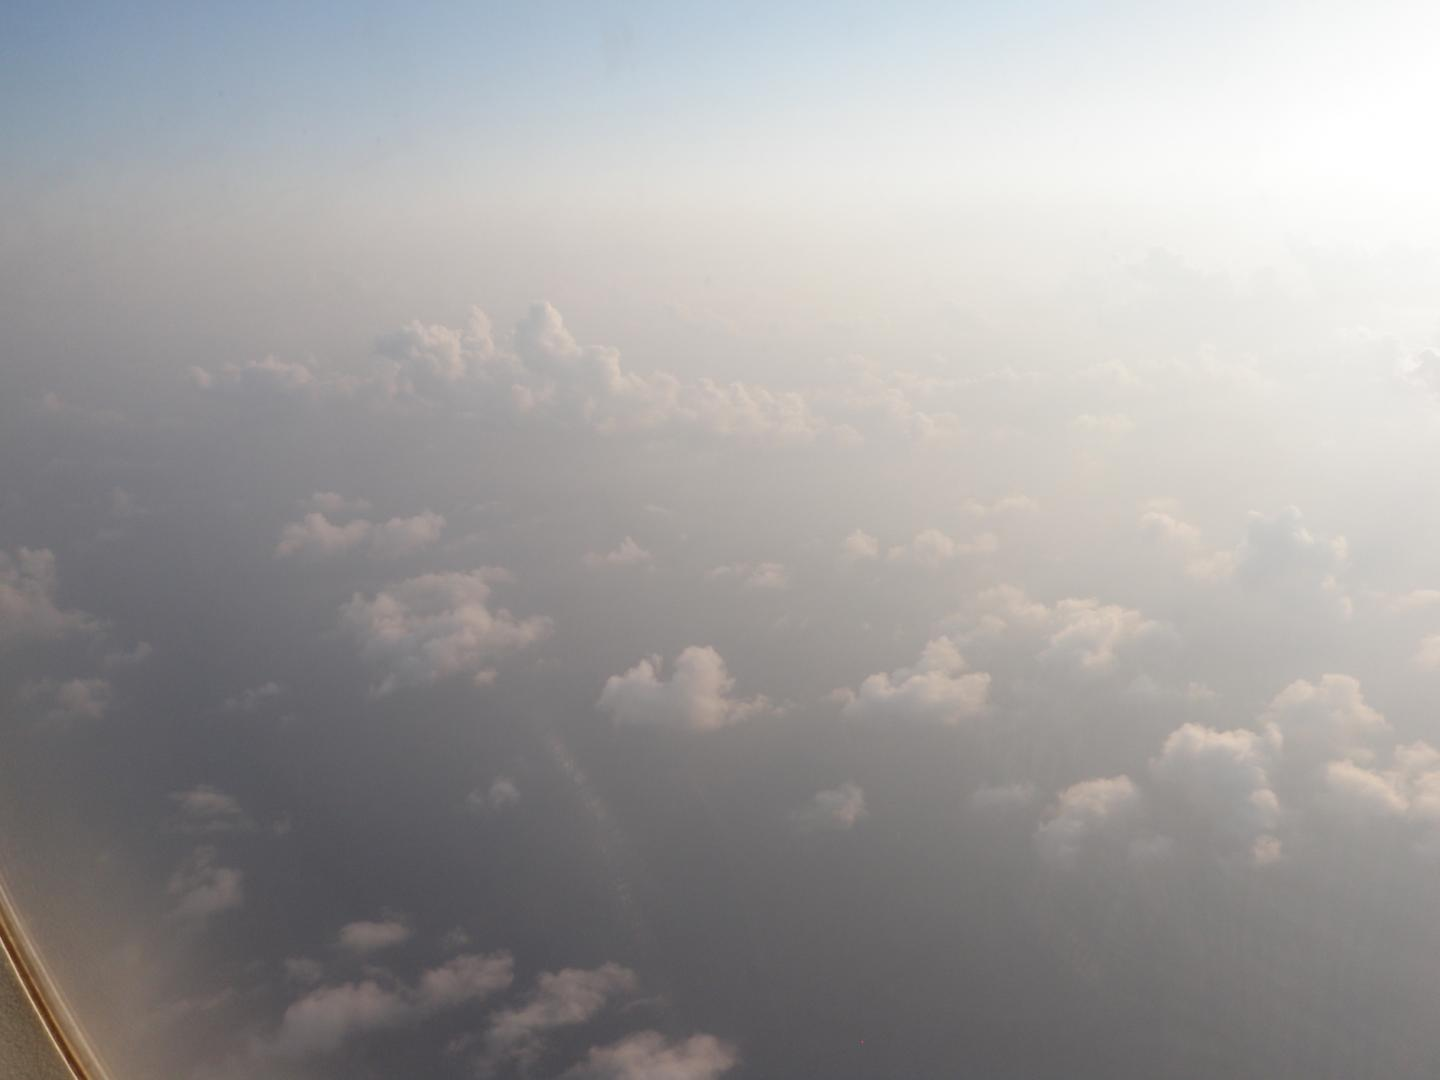 Turbulence in the Atmospheric Boundary Layer